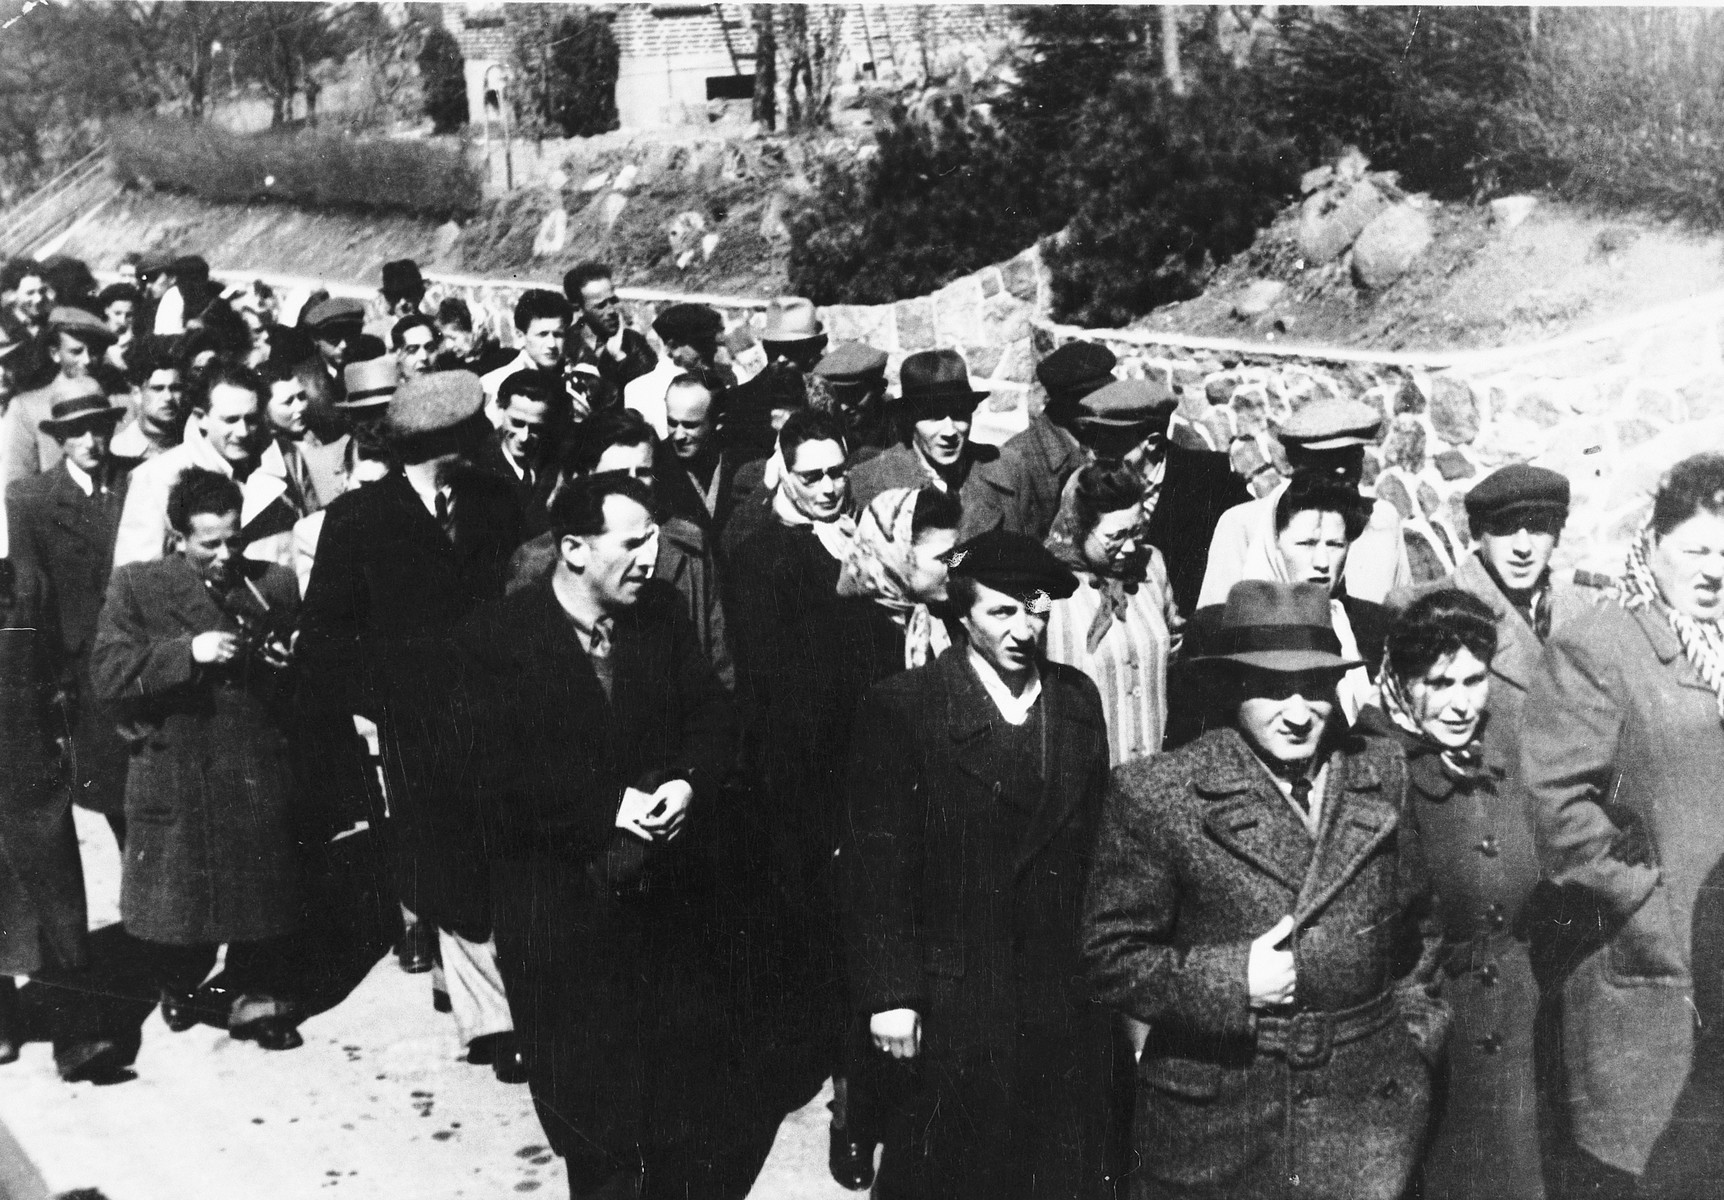 Jews from the Neustadt displaced persons camp, some wearing concentration camp uniforms, march to a memorial service.